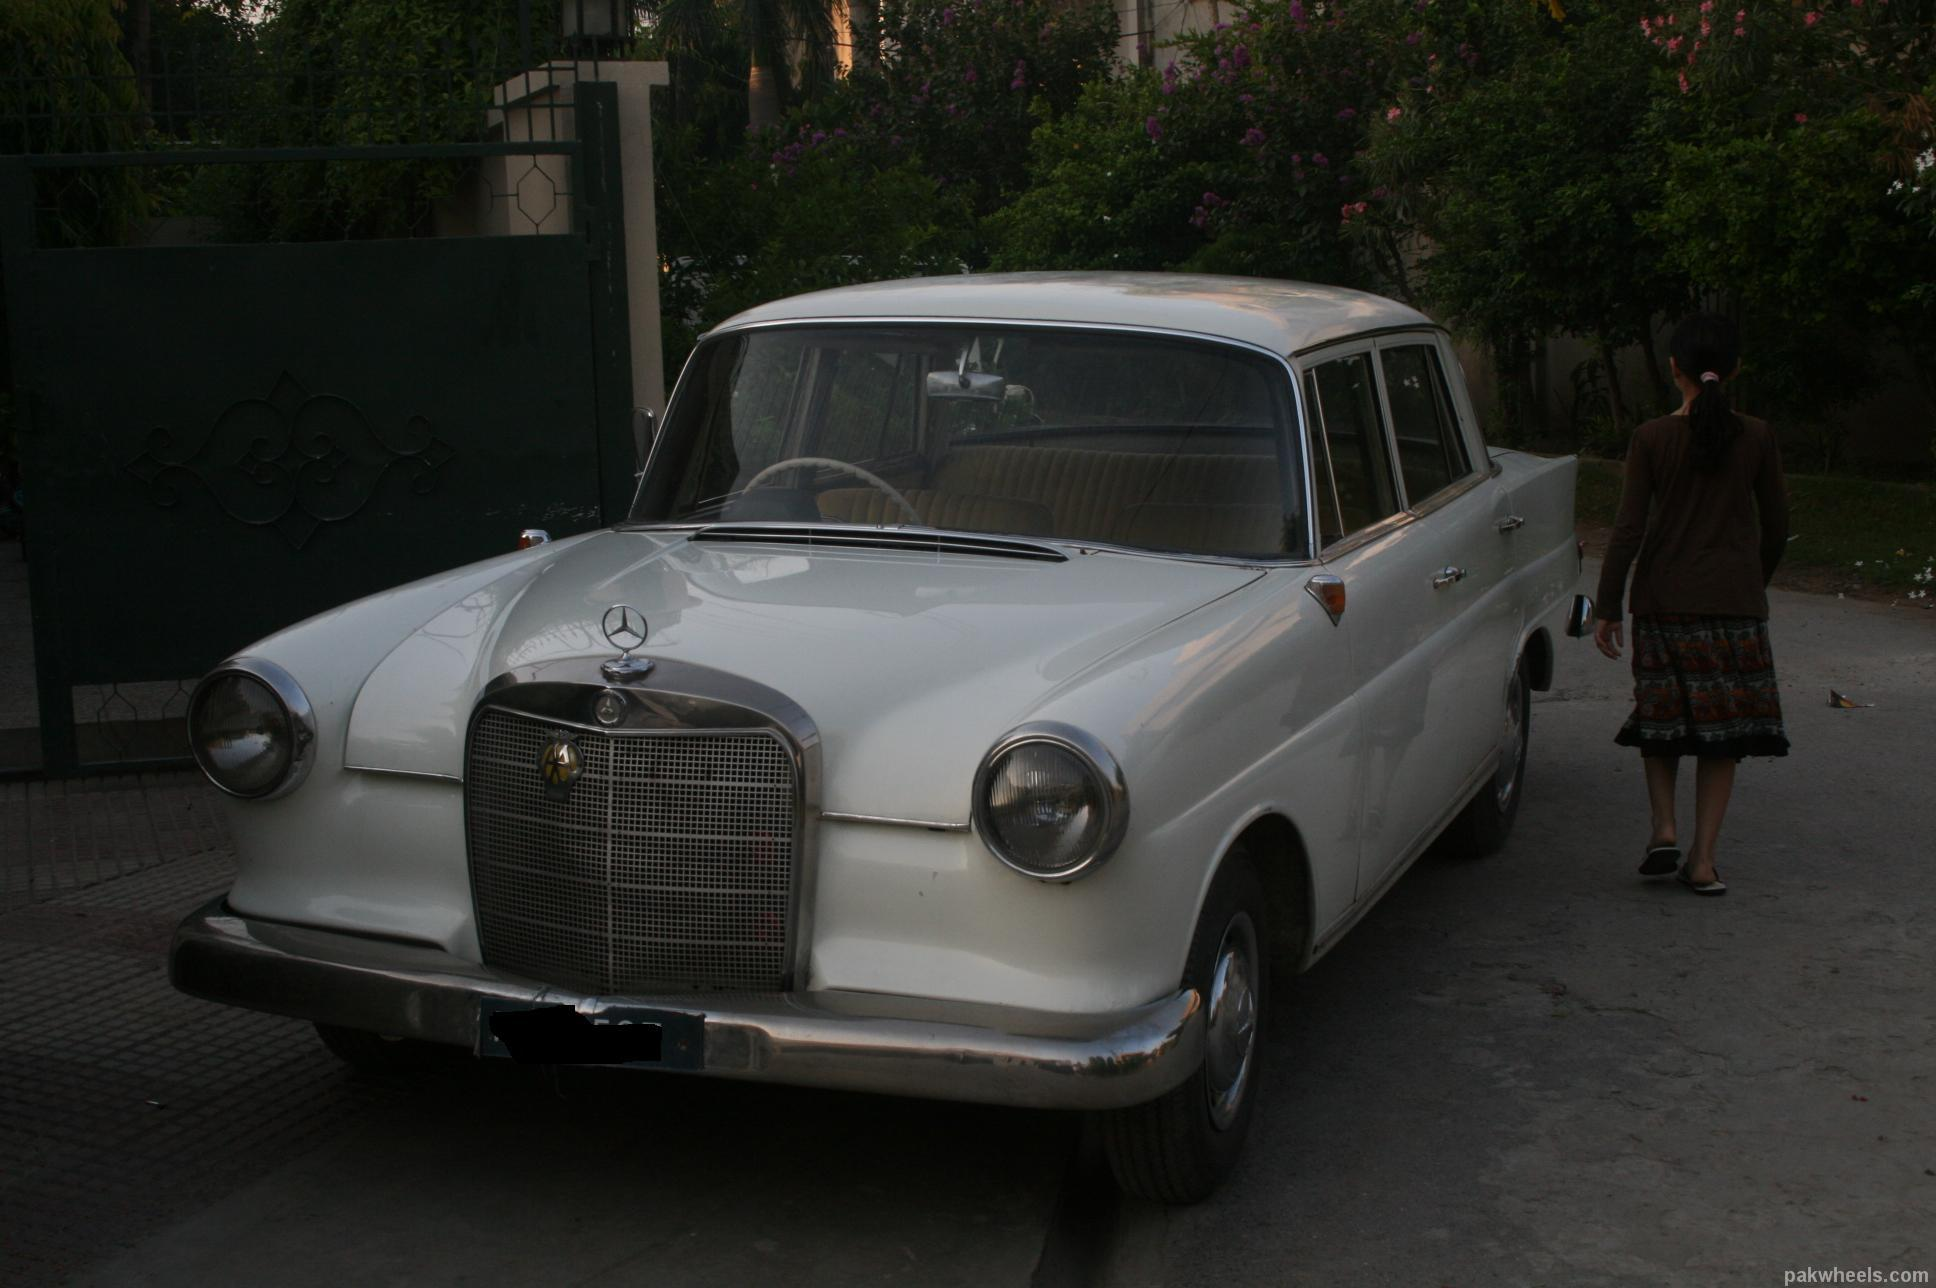 Mercedes benz s class 1960 of oomark member ride 10672 for Mercedes benz membership